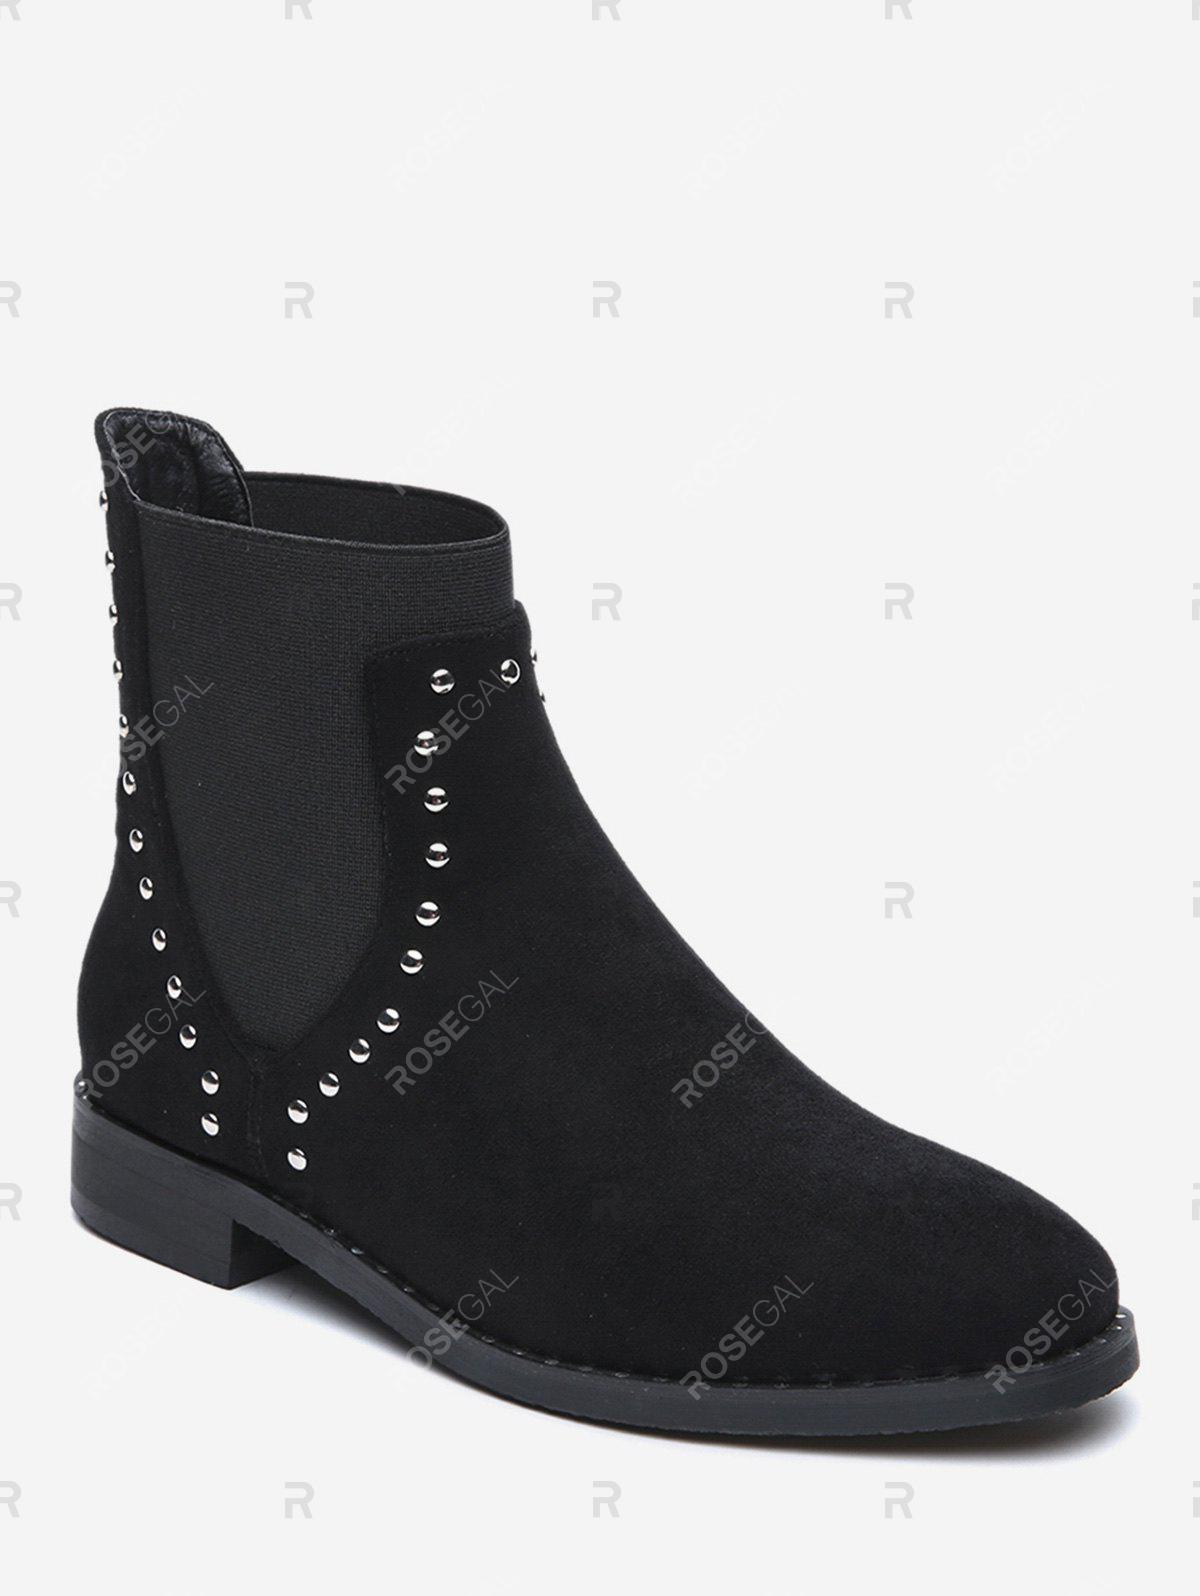 Best Stud Decorative Flat Chelsea Boots